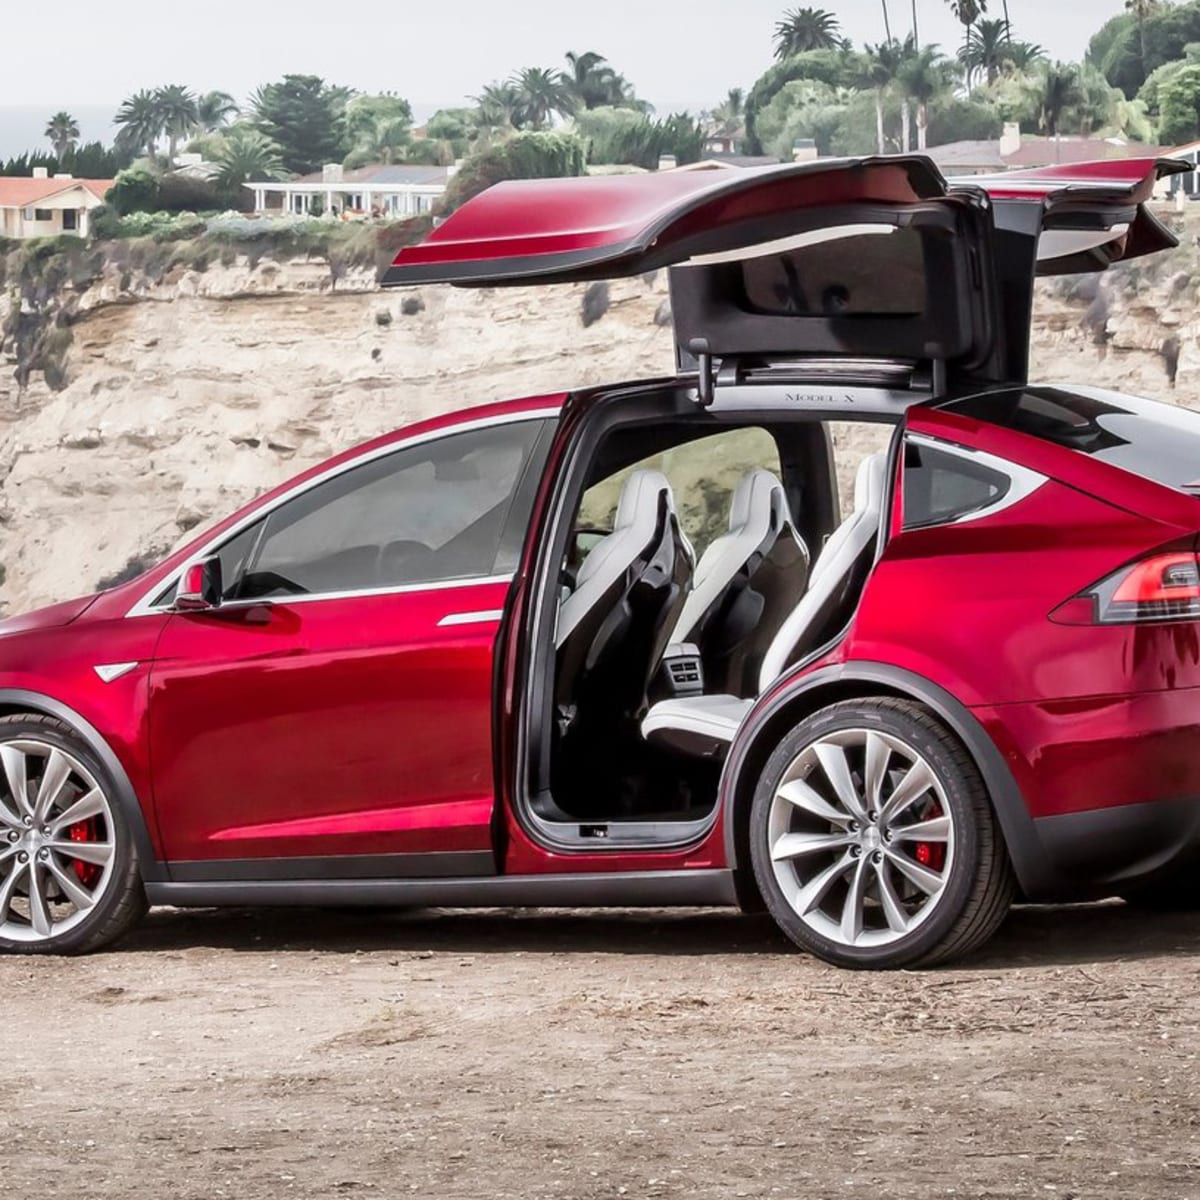 Tesla Model X Falcon Wing Doors Use Ultrasonic Sensors To Operate In Tight Spaces Caradvice